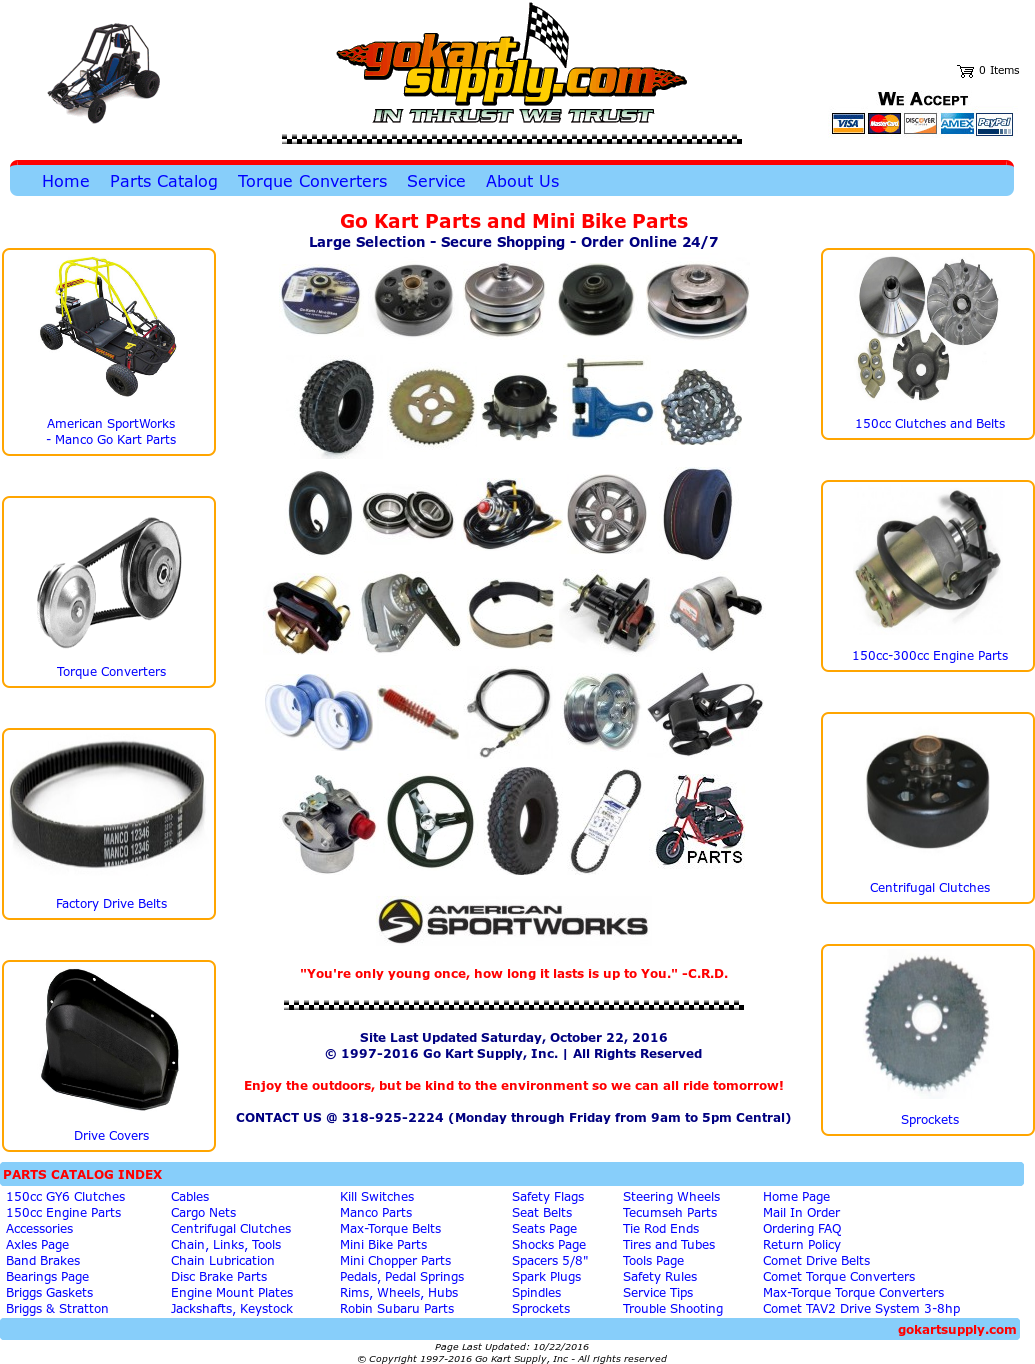 Go Kart Supply Competitors, Revenue and Employees - Owler